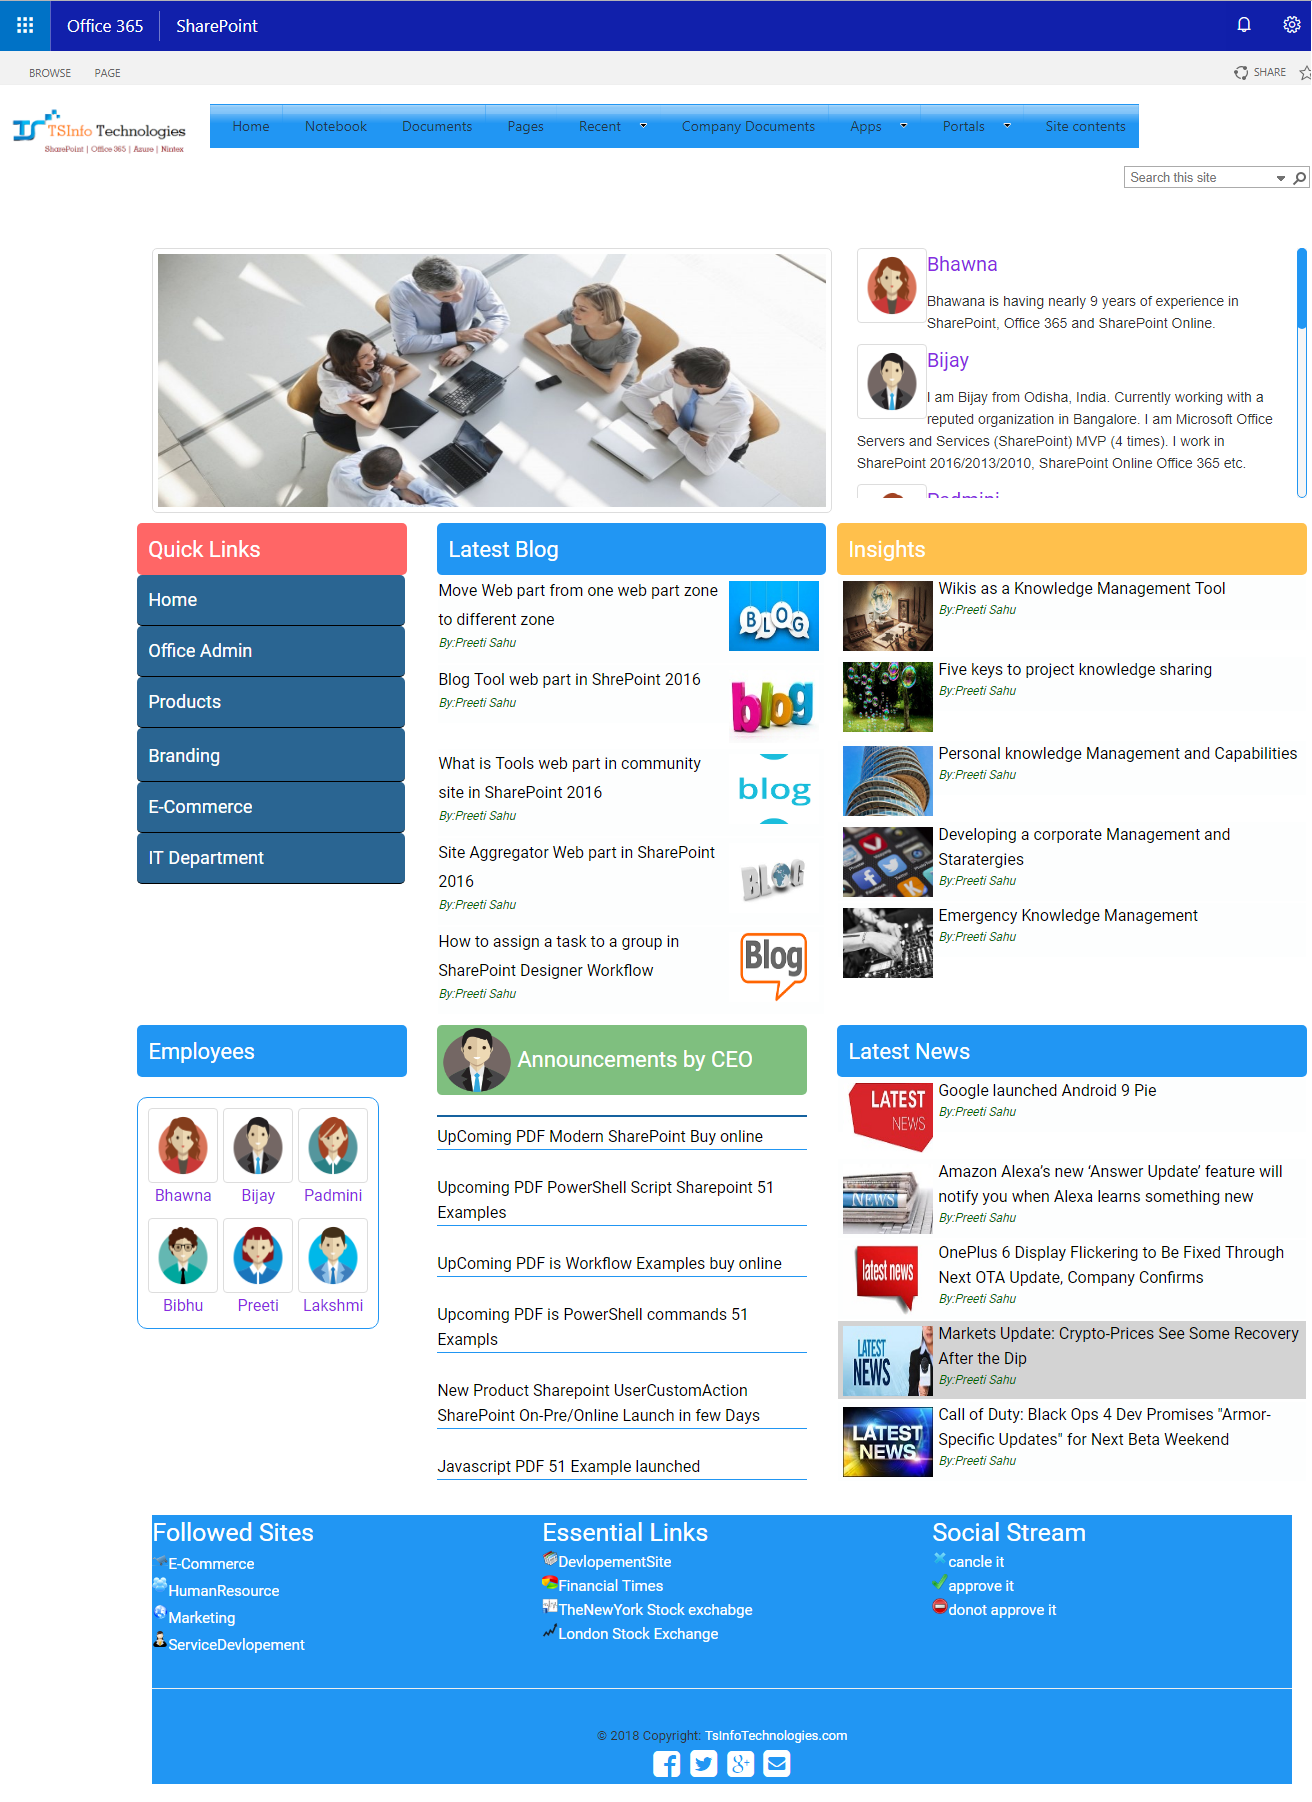 SharePoint intranet portals